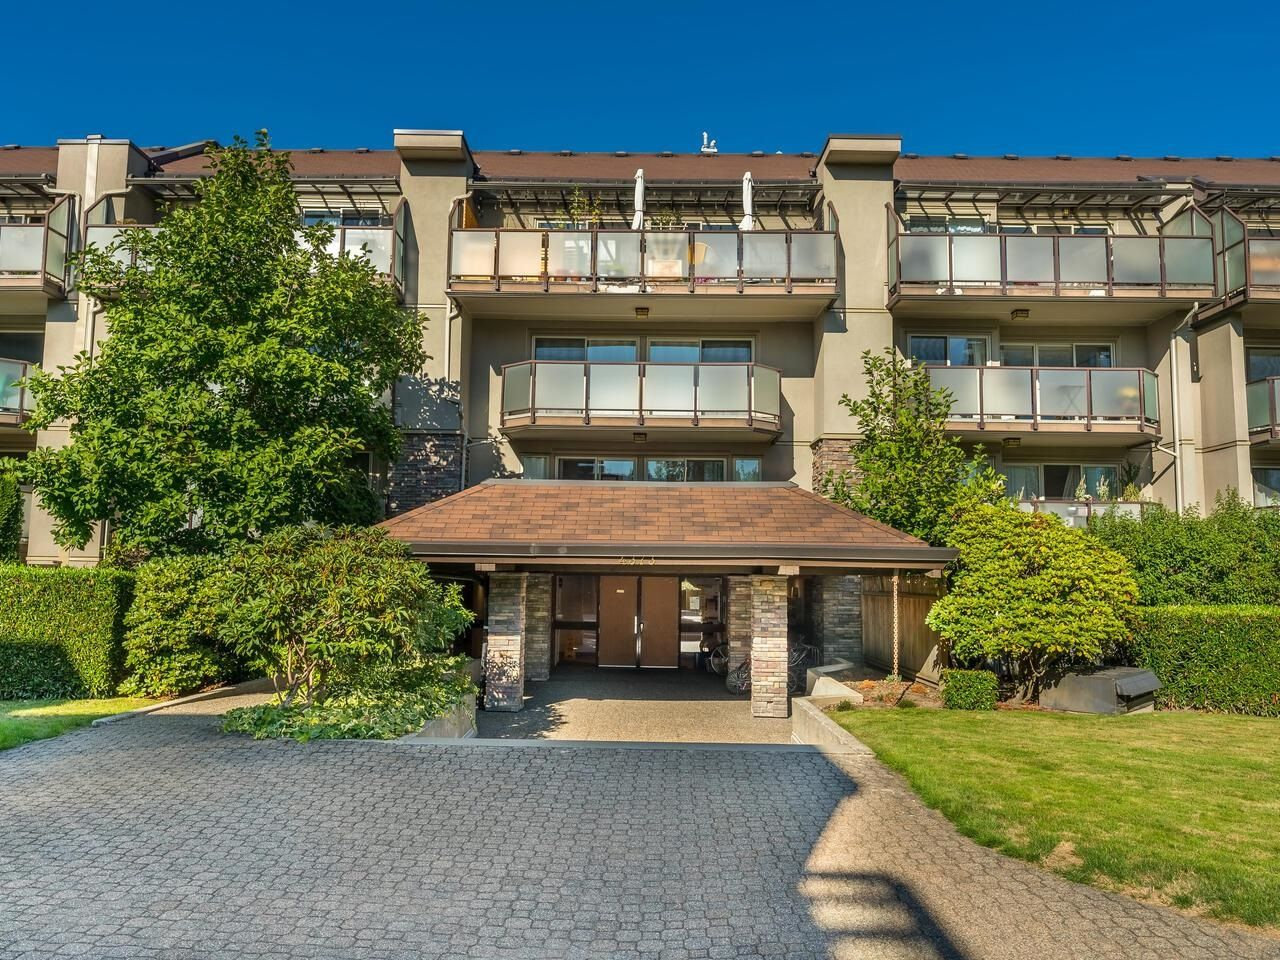 """Main Photo: 206 4373 HALIFAX Street in Burnaby: Brentwood Park Condo for sale in """"BRENT GARDENS"""" (Burnaby North)  : MLS®# R2614328"""